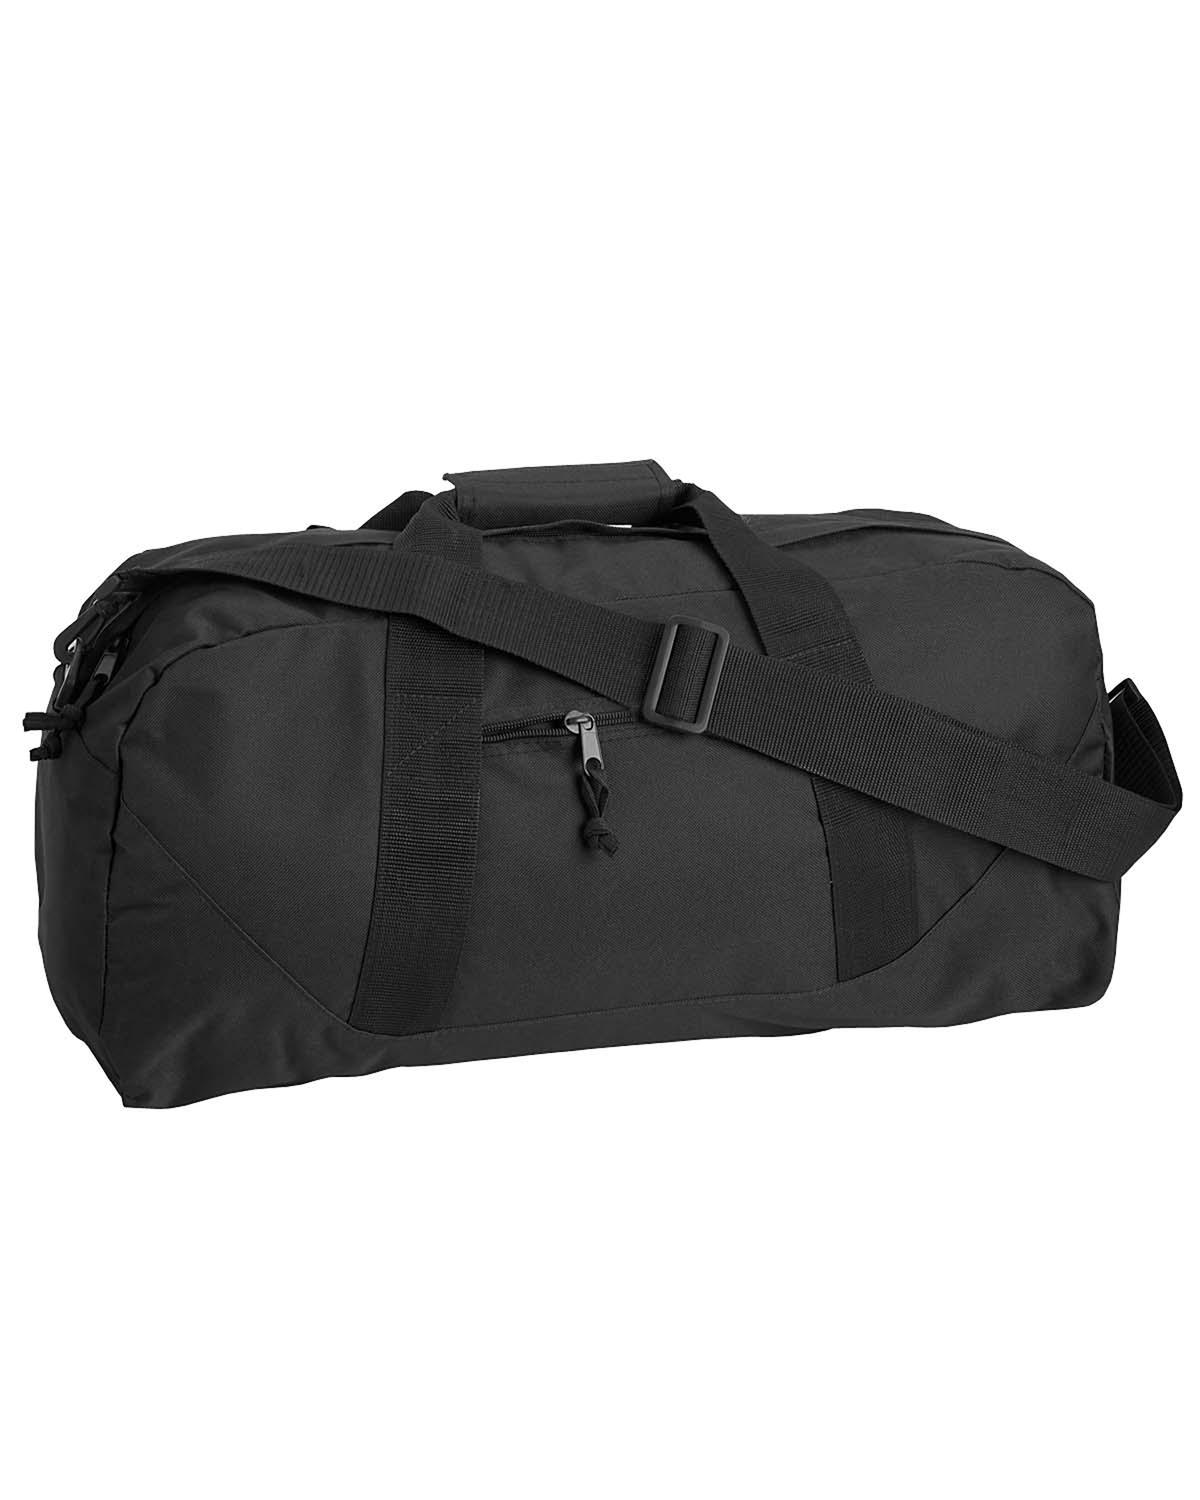 Liberty Bags Large Square Duffel 8806